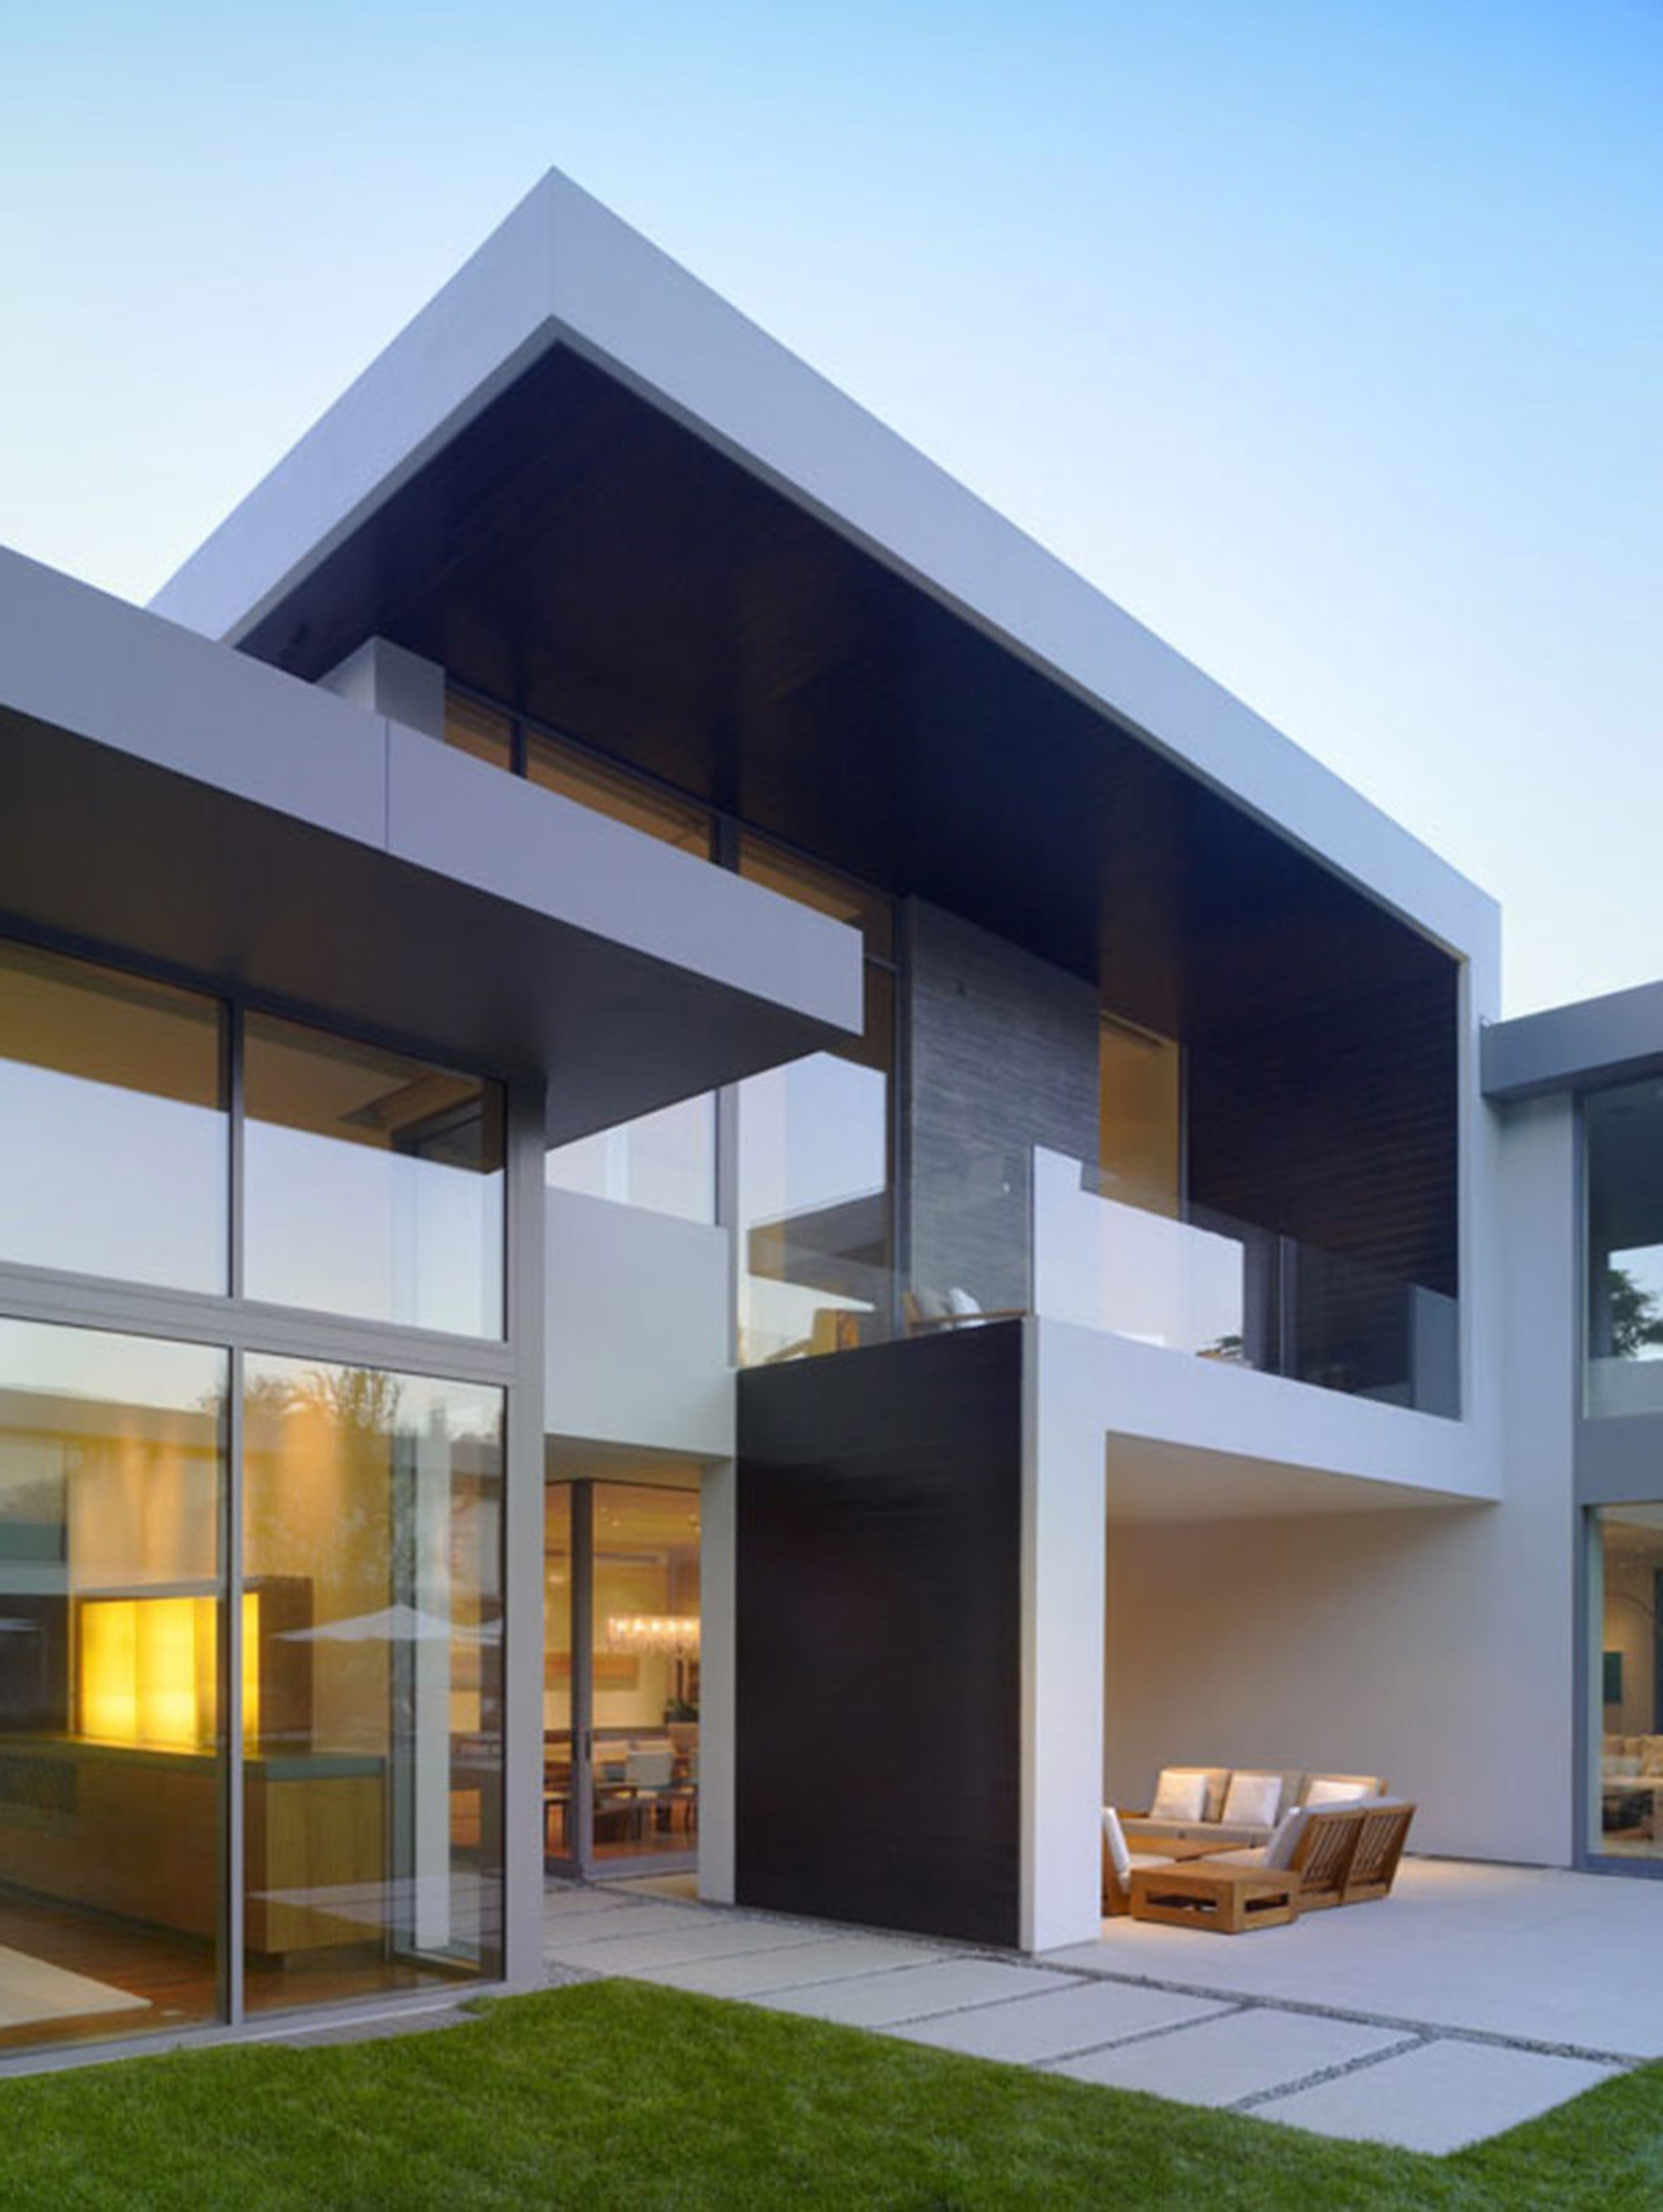 Minimalist Glasses House Exterior Design Gallery Outrial Exterior Stairs Beside Glass Walls Architecture Homes Design With Glass Walls (Image 21 of 25)